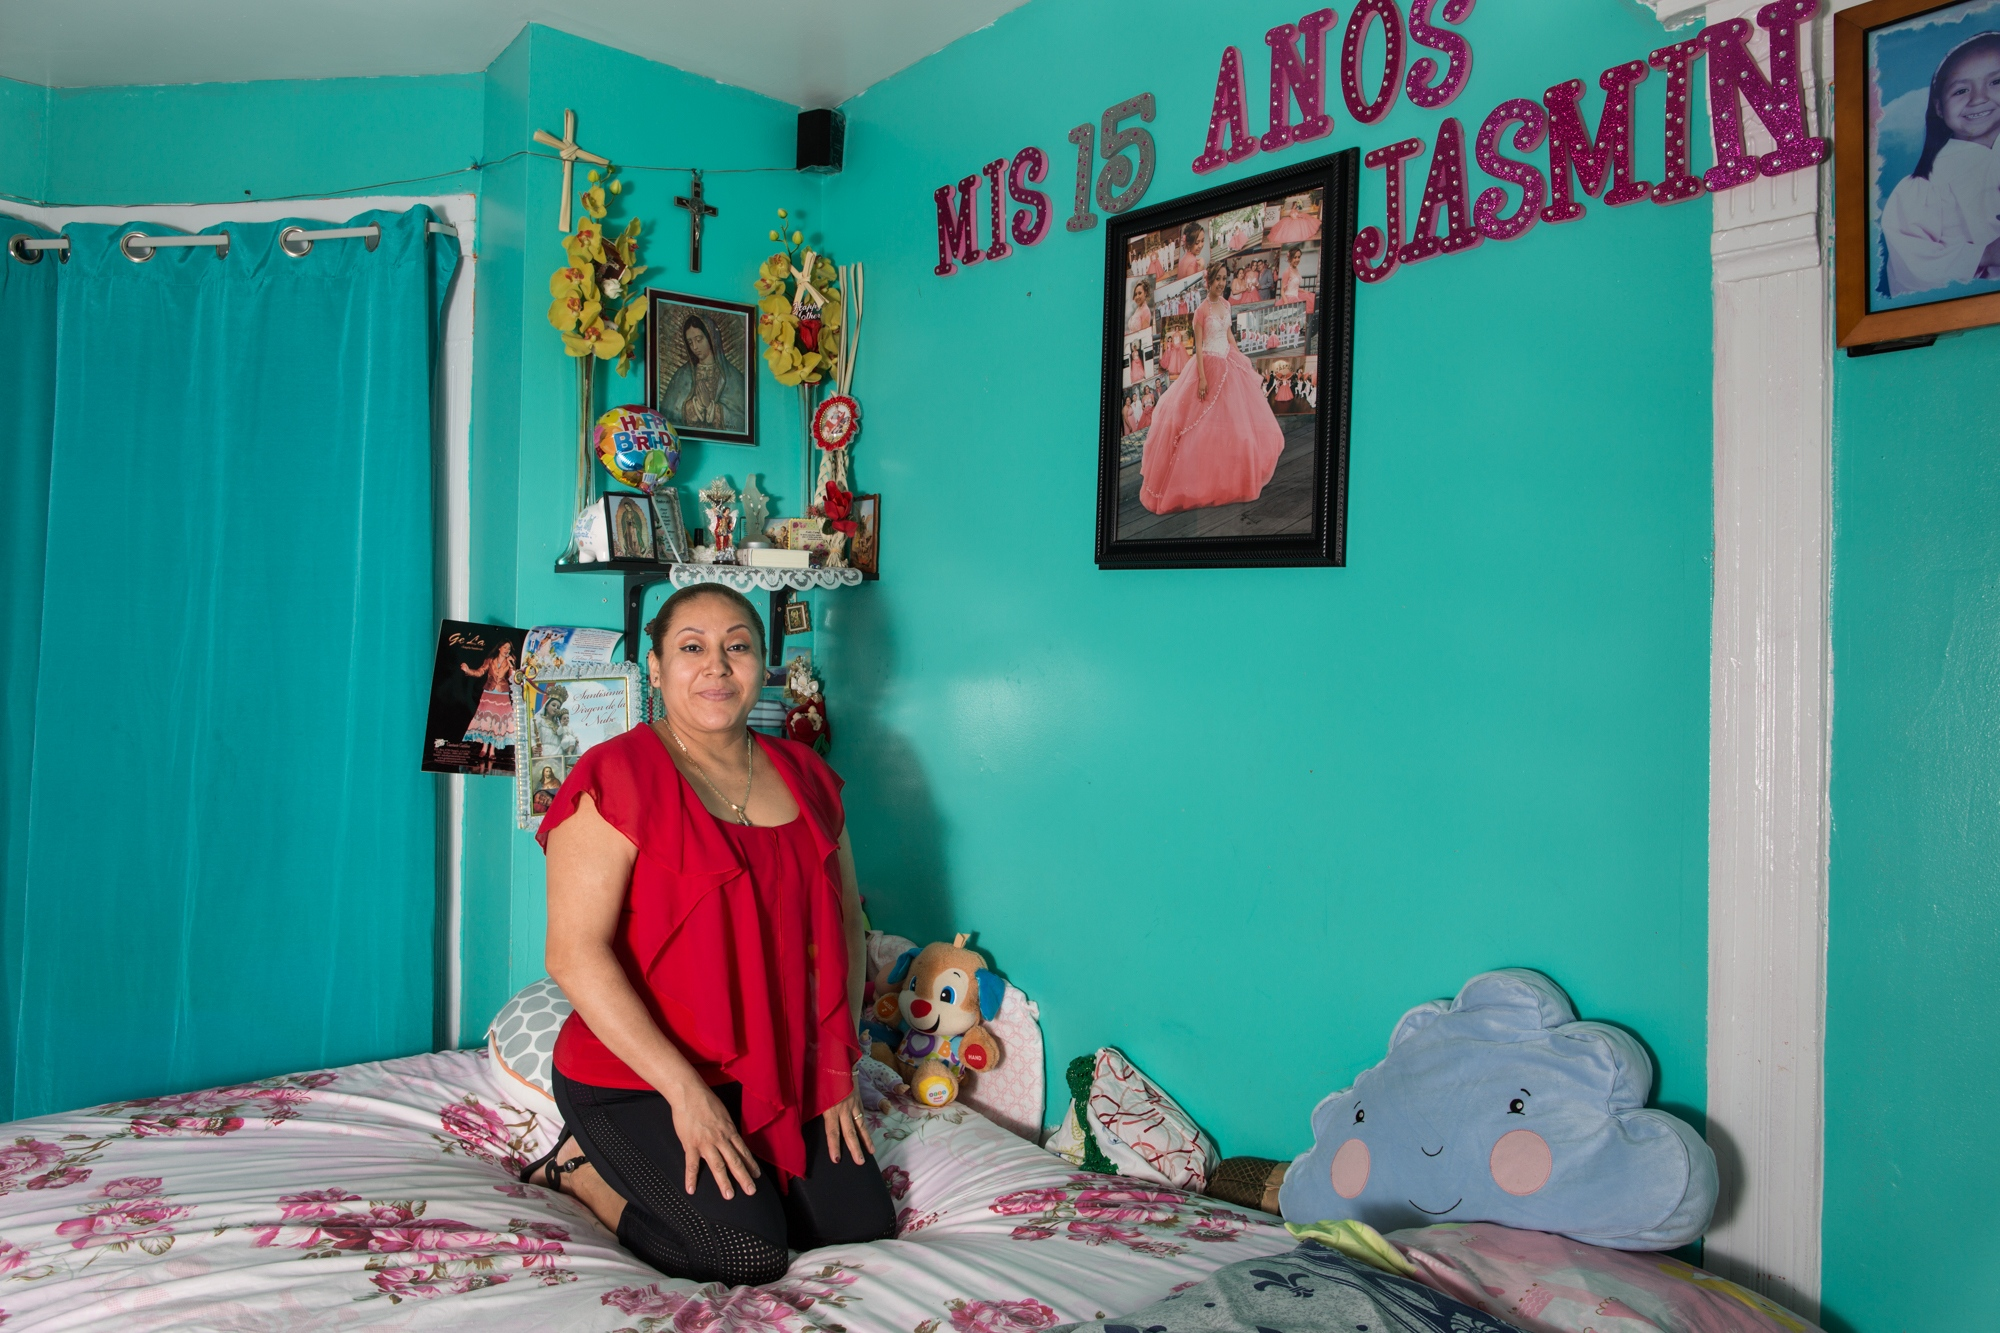 Paulina Garcia , is from the community of San Juan Tianguismaninalco of the state of Puebla,  she has been in New York for 20 Years. Paulina has one grand daughter born in the United States. She is a hairstylist. She lives in Brooklyn, New York. She is 50 years old.